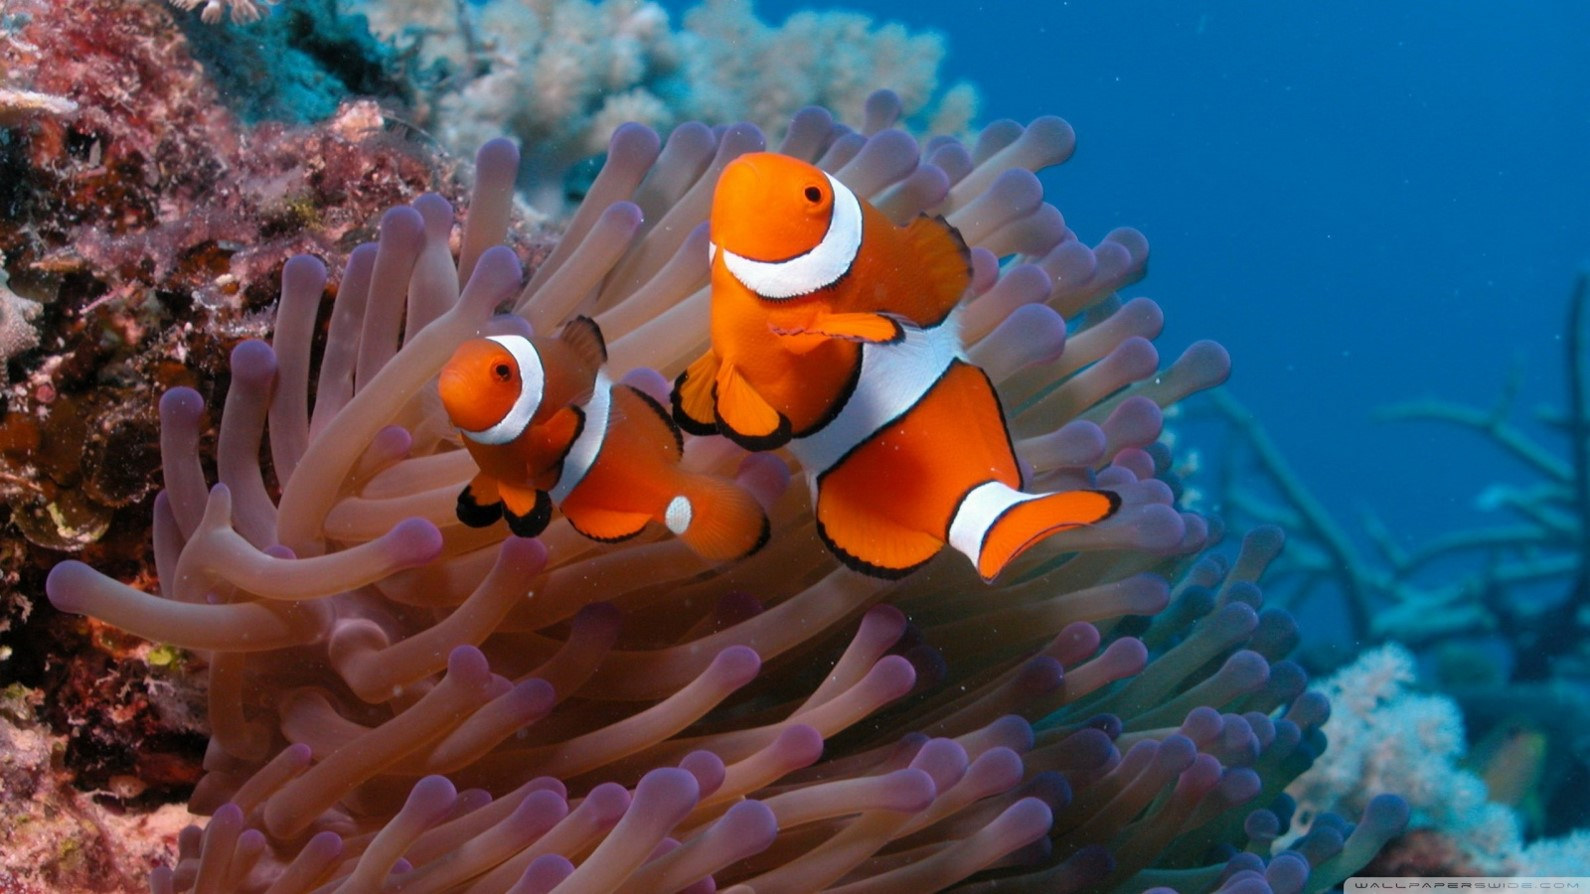 Changing with the environment: how resilient are coral reef fish?